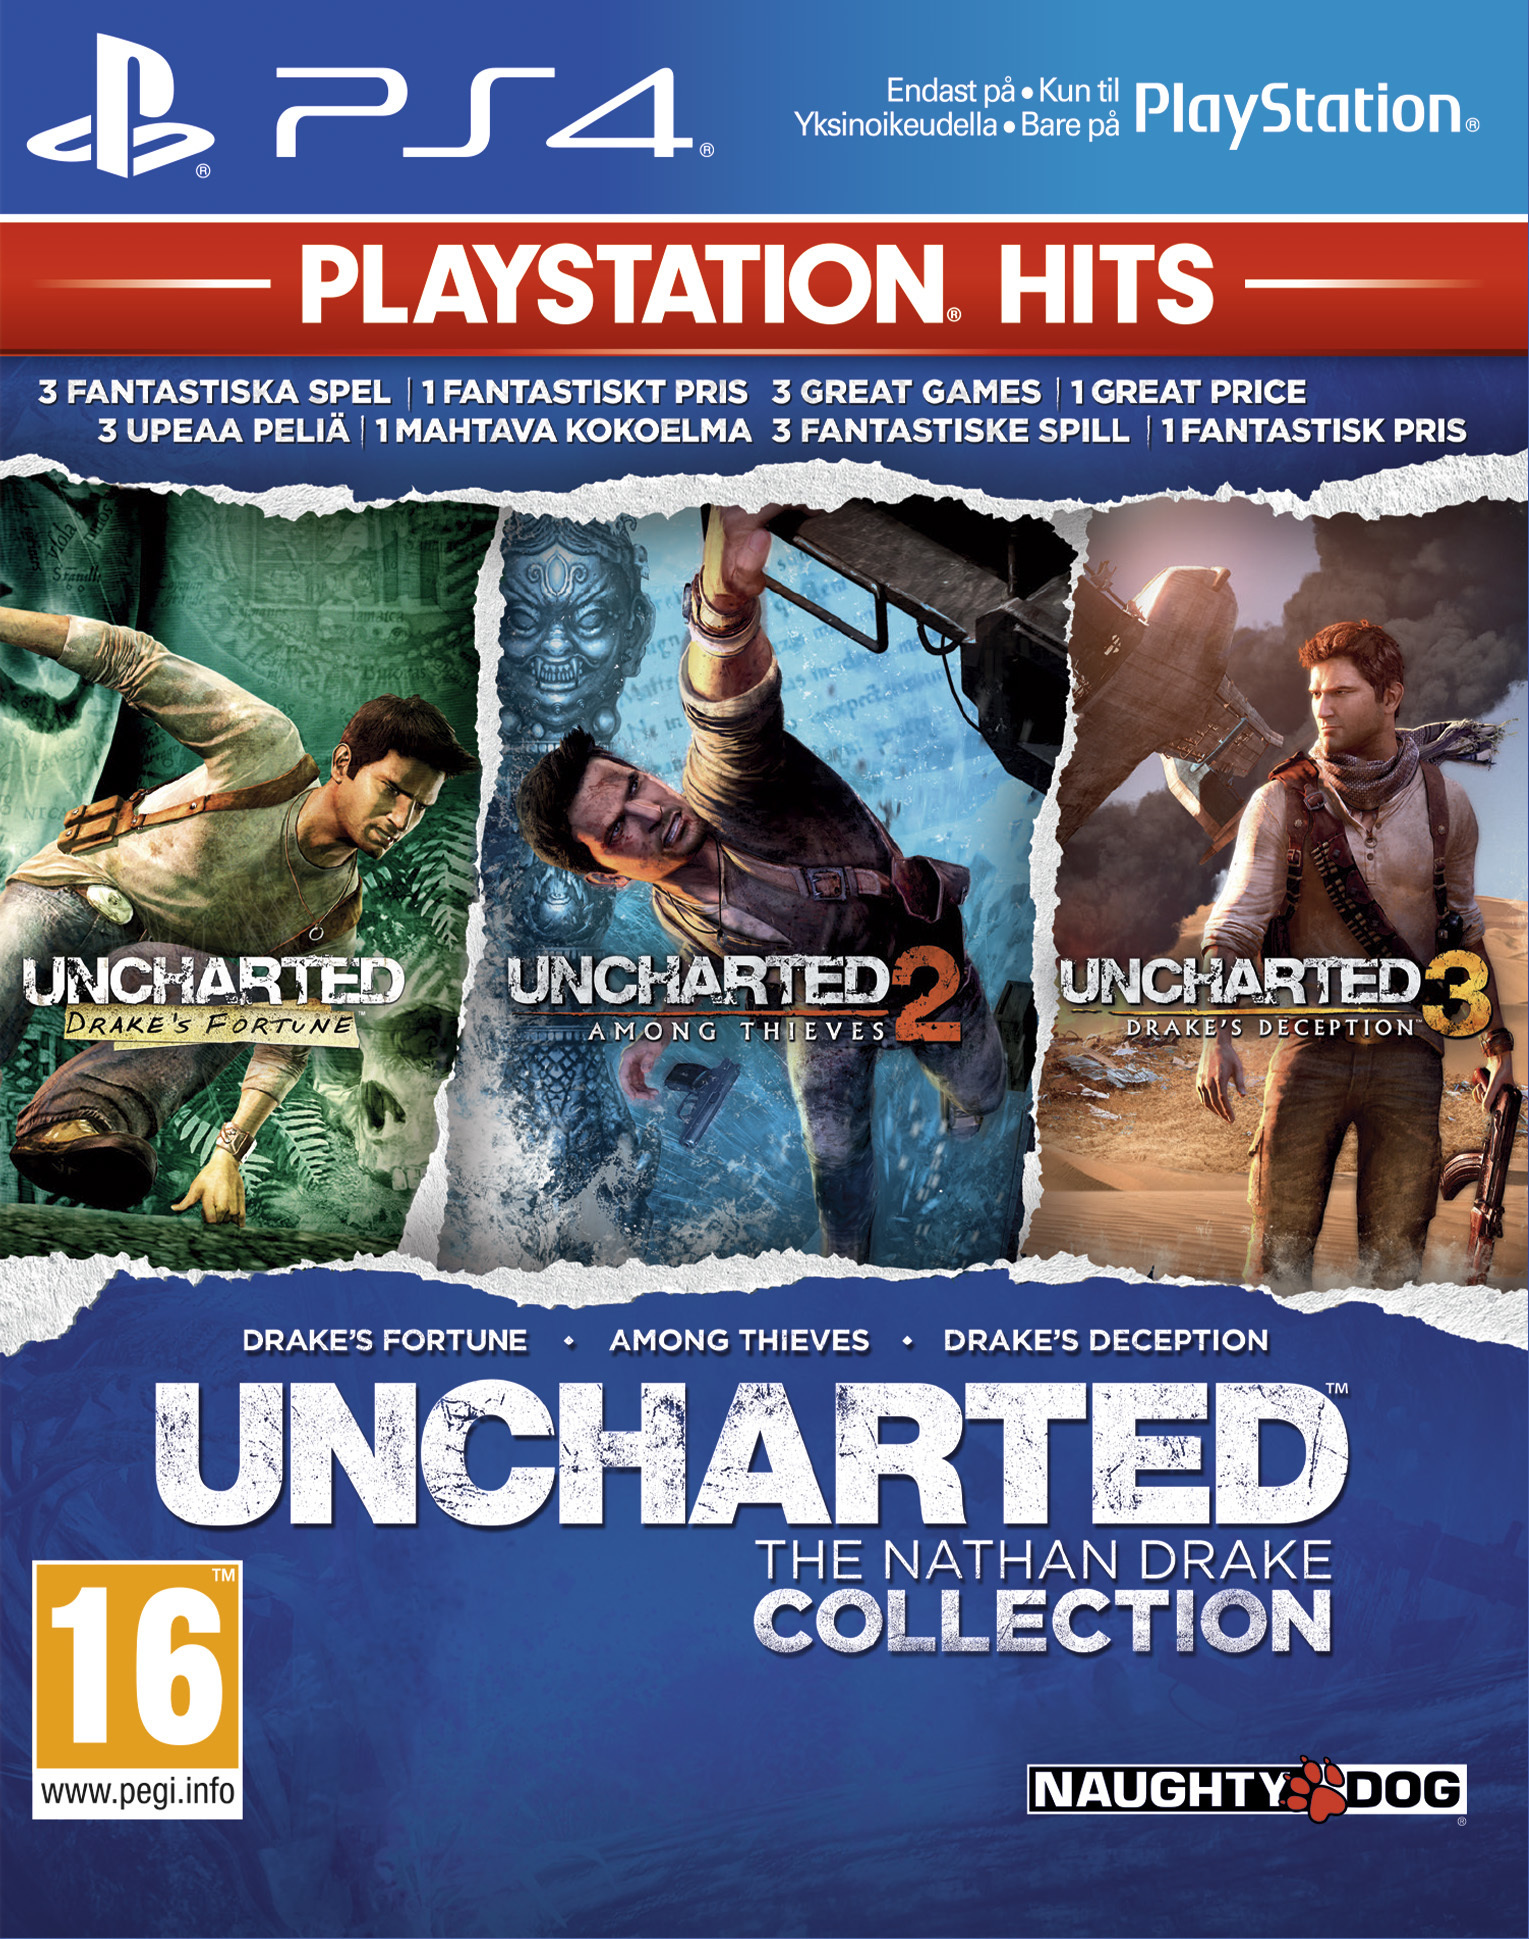 Uncharted: The Nathan Drake Collection (Натан Дрейк Kоллекция) (ENG)